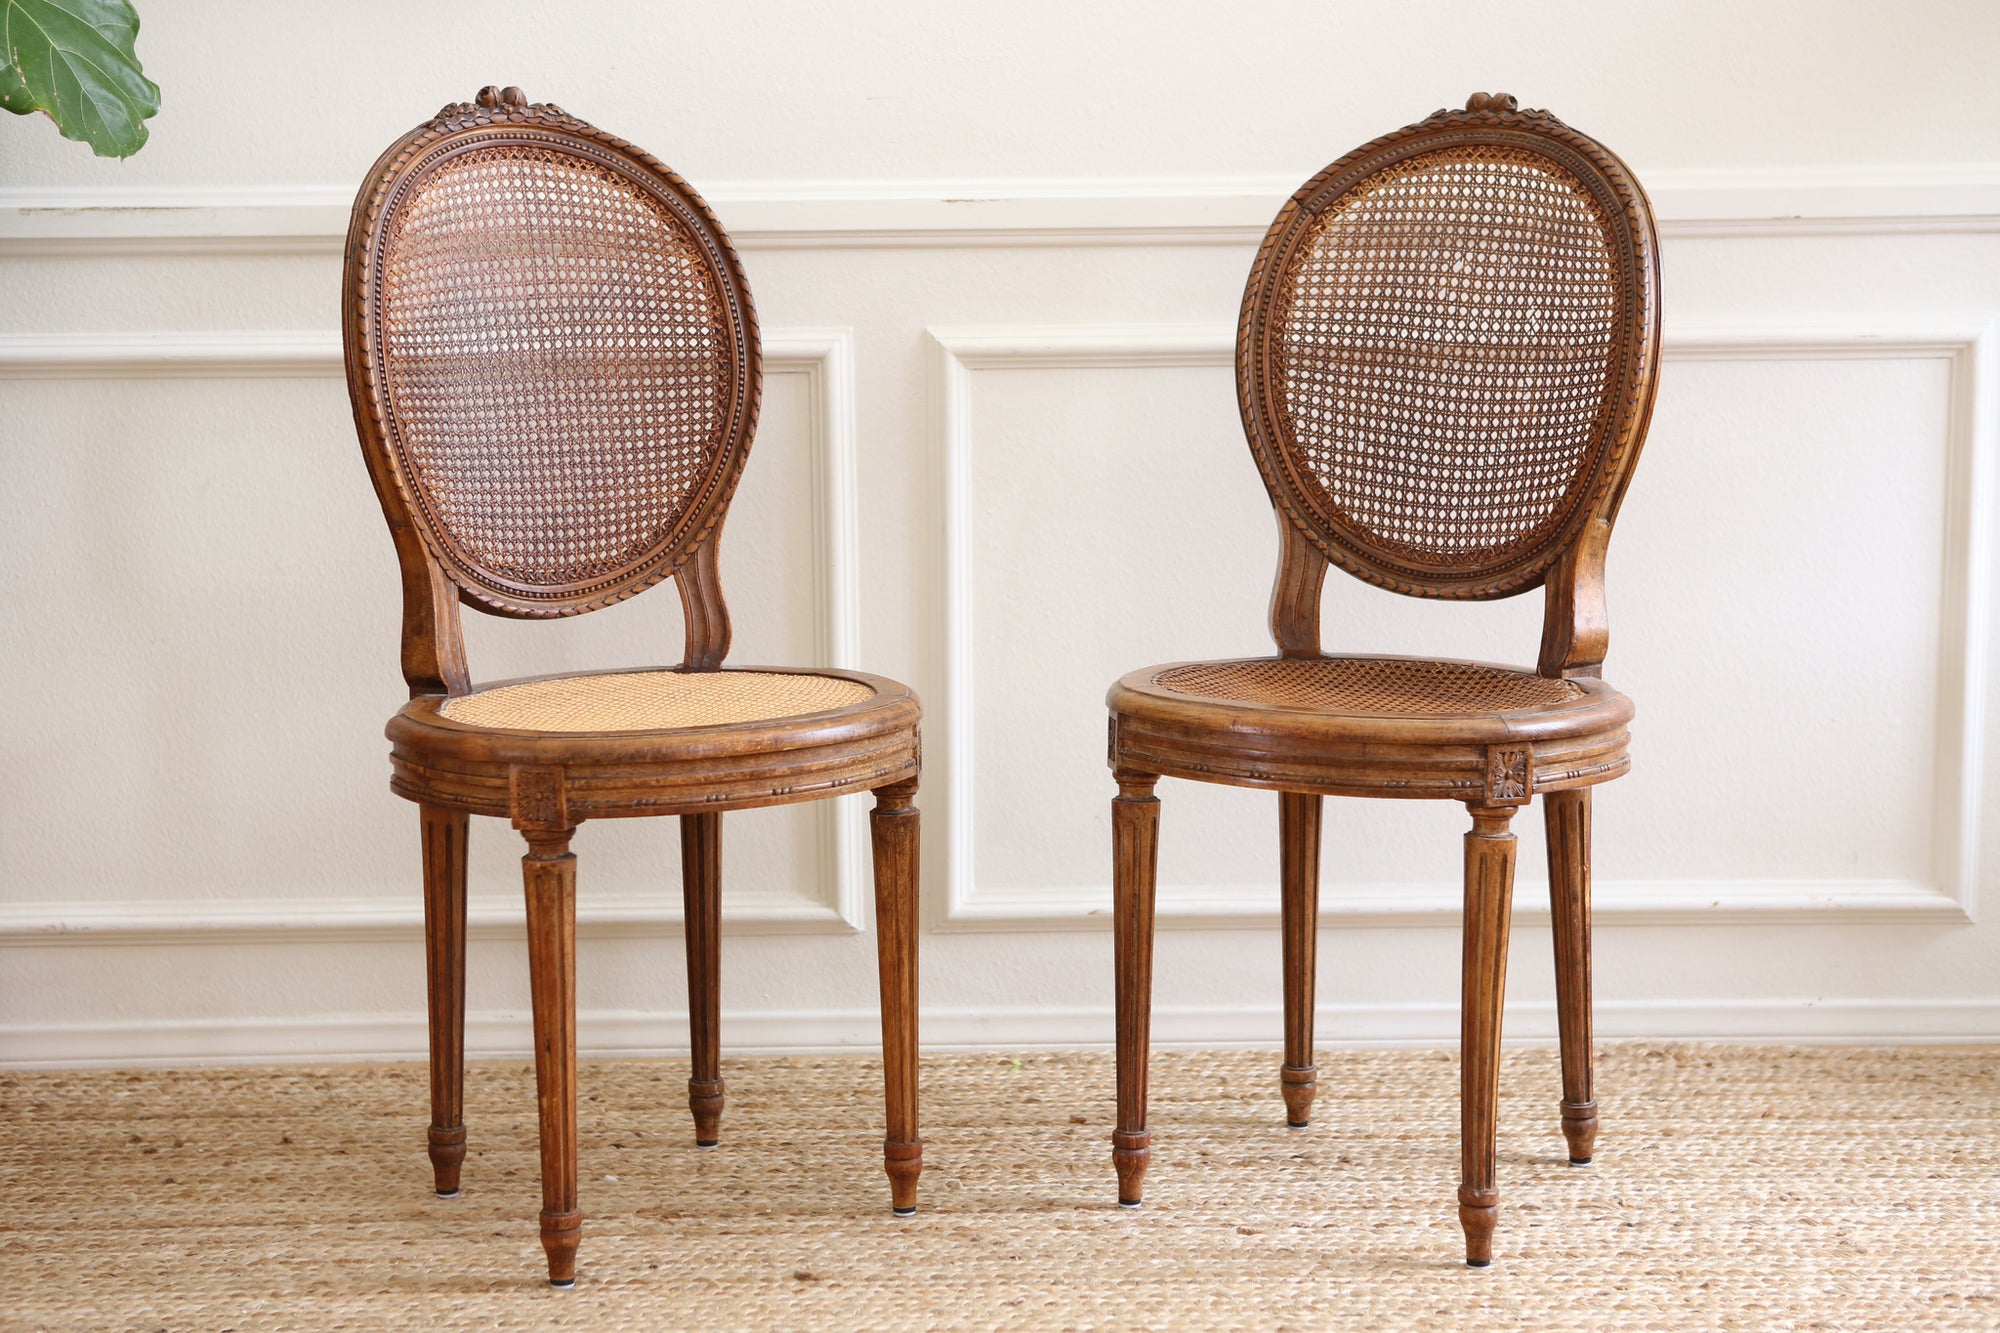 French Cane Chair french cane chair with cushion set of two shabby chic no 384